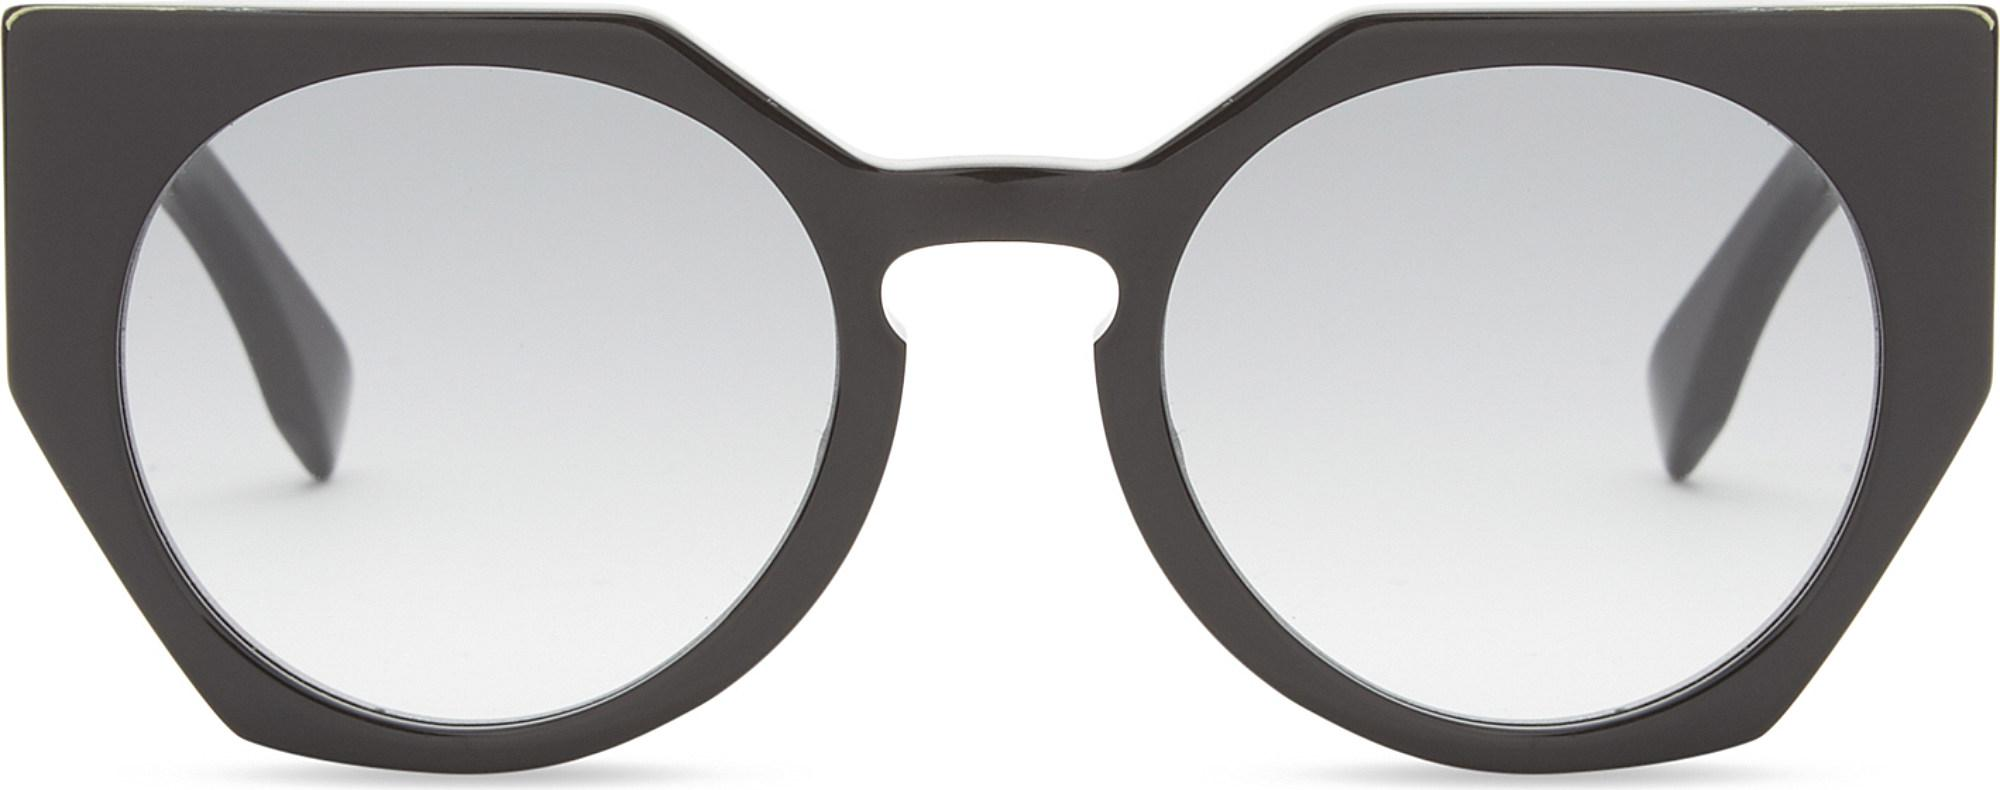 0bbb9854bcc Fendi Ff0151 Cat-eye Sunglasses in Black - Lyst